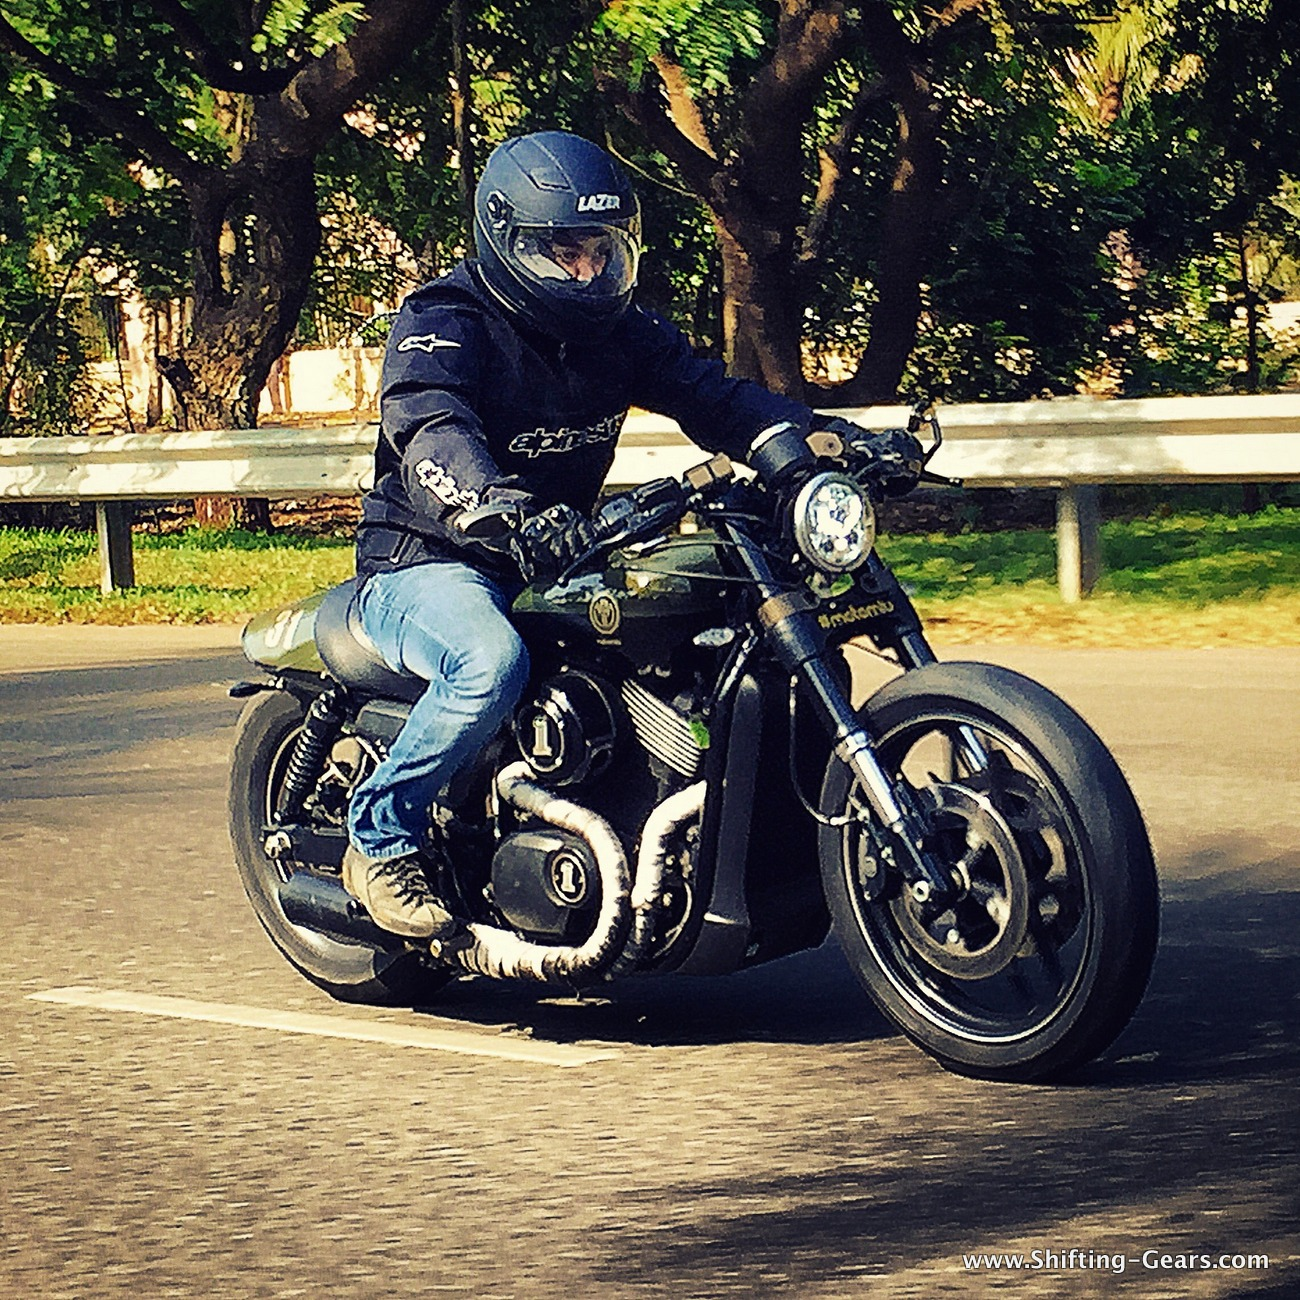 Motomiu Harley-Davidson Street 750 photo gallery